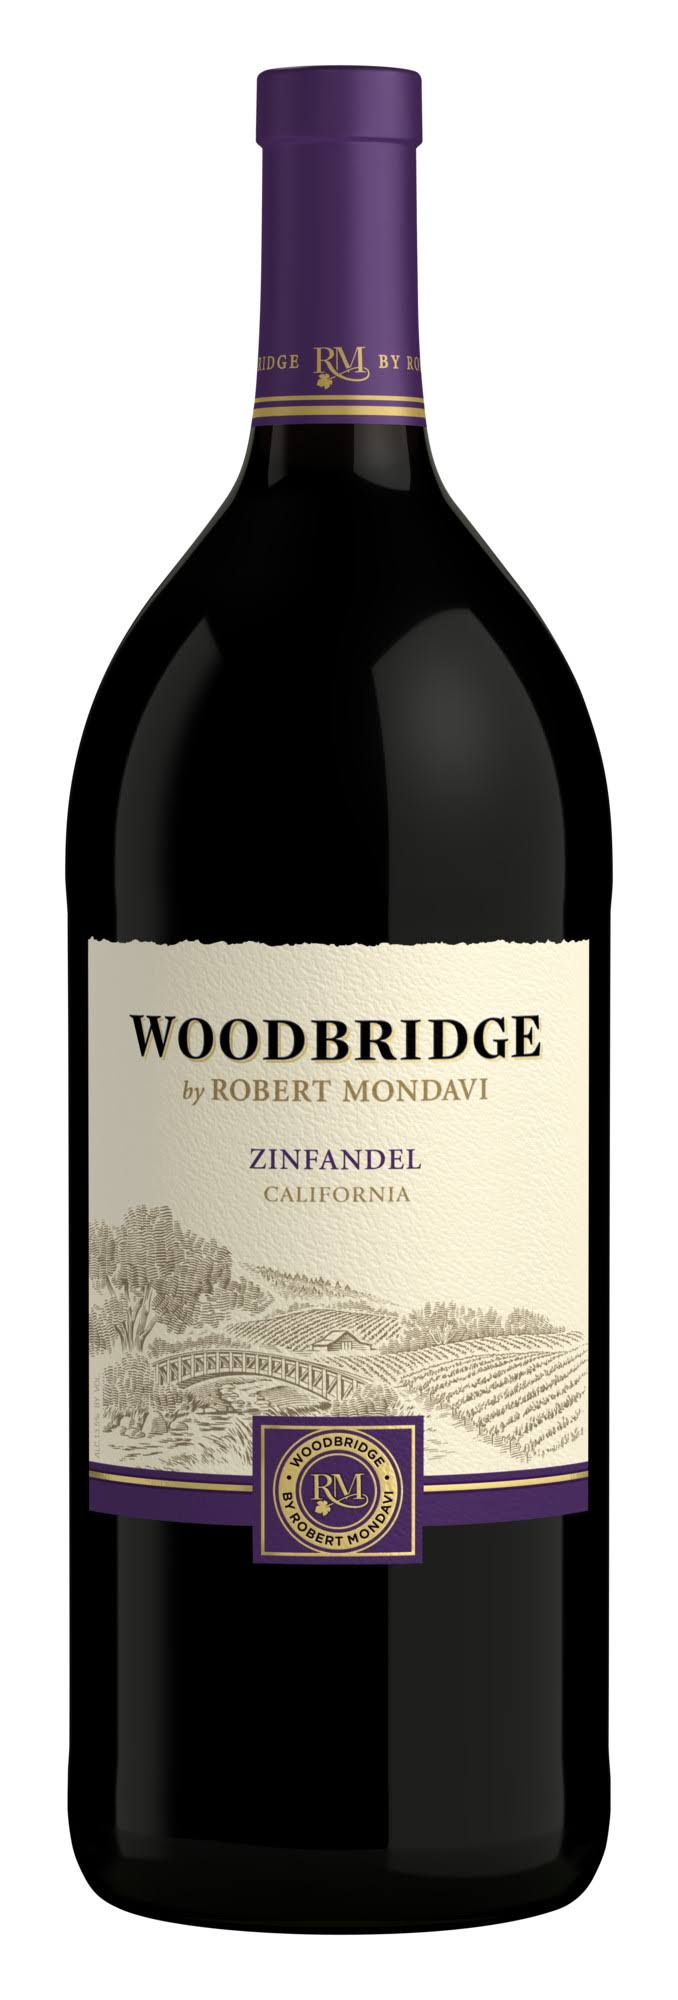 Woodbridge Robert Mondavi Zinfandel - California, United States, 1.5L